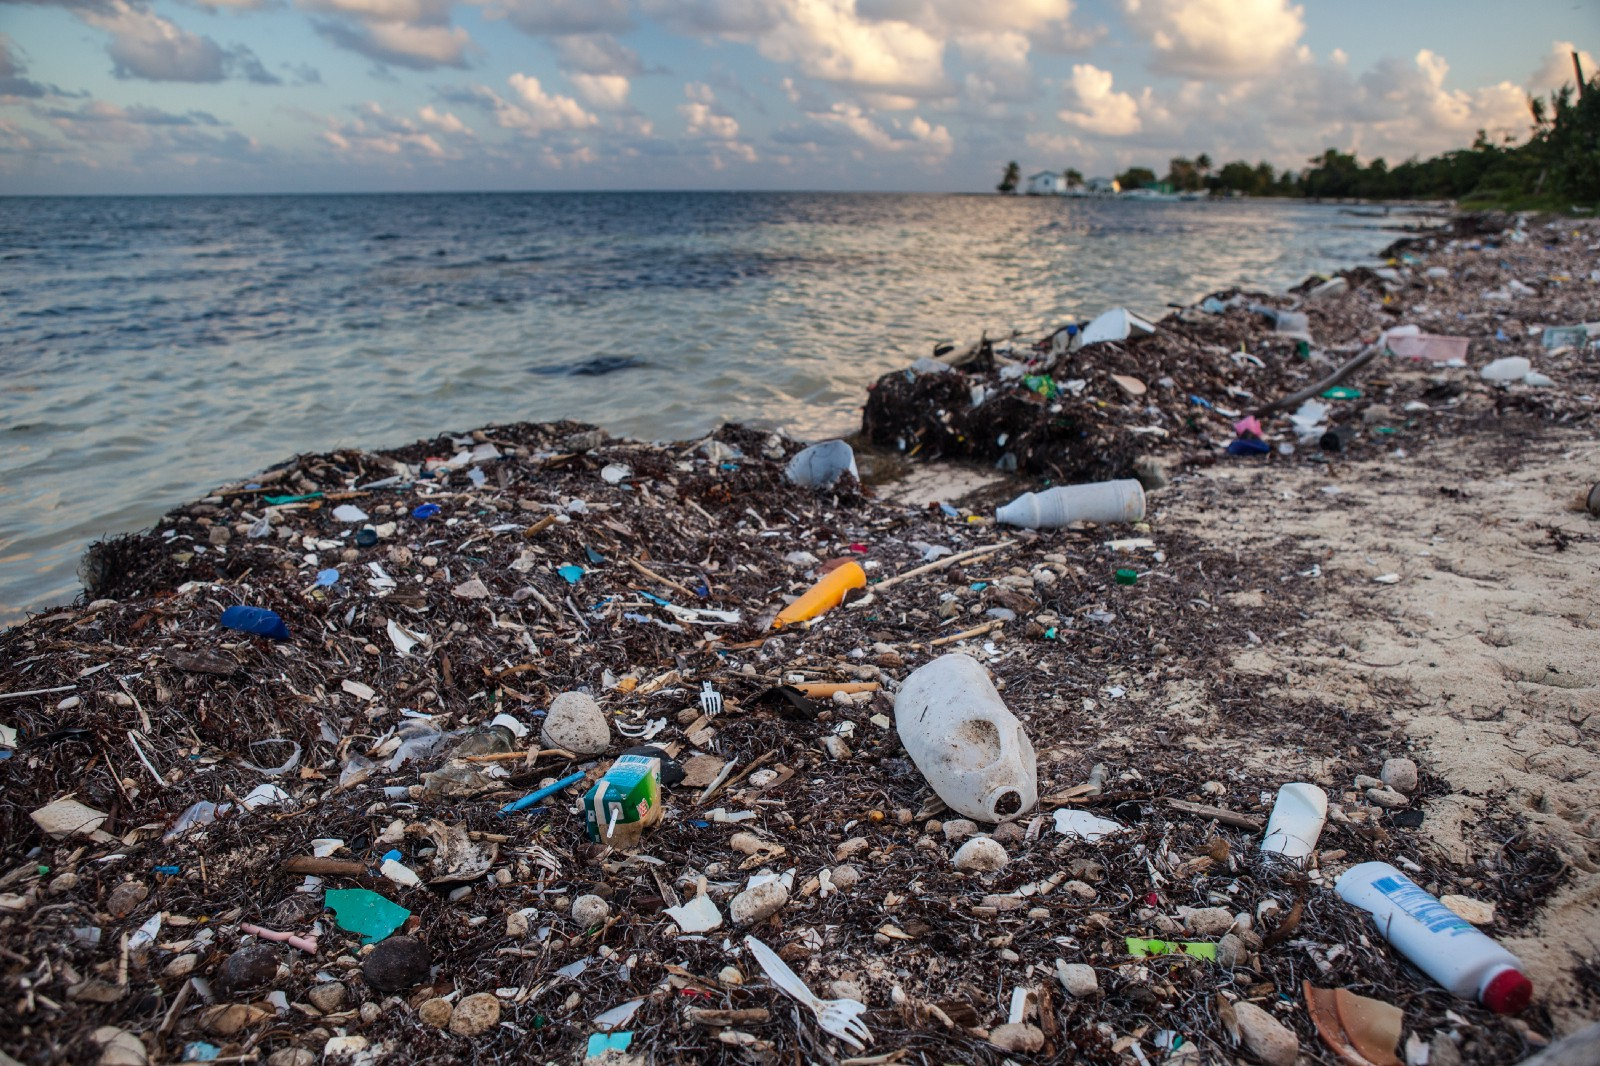 200 Countries Call For End To Plastic Pollution As You Sow